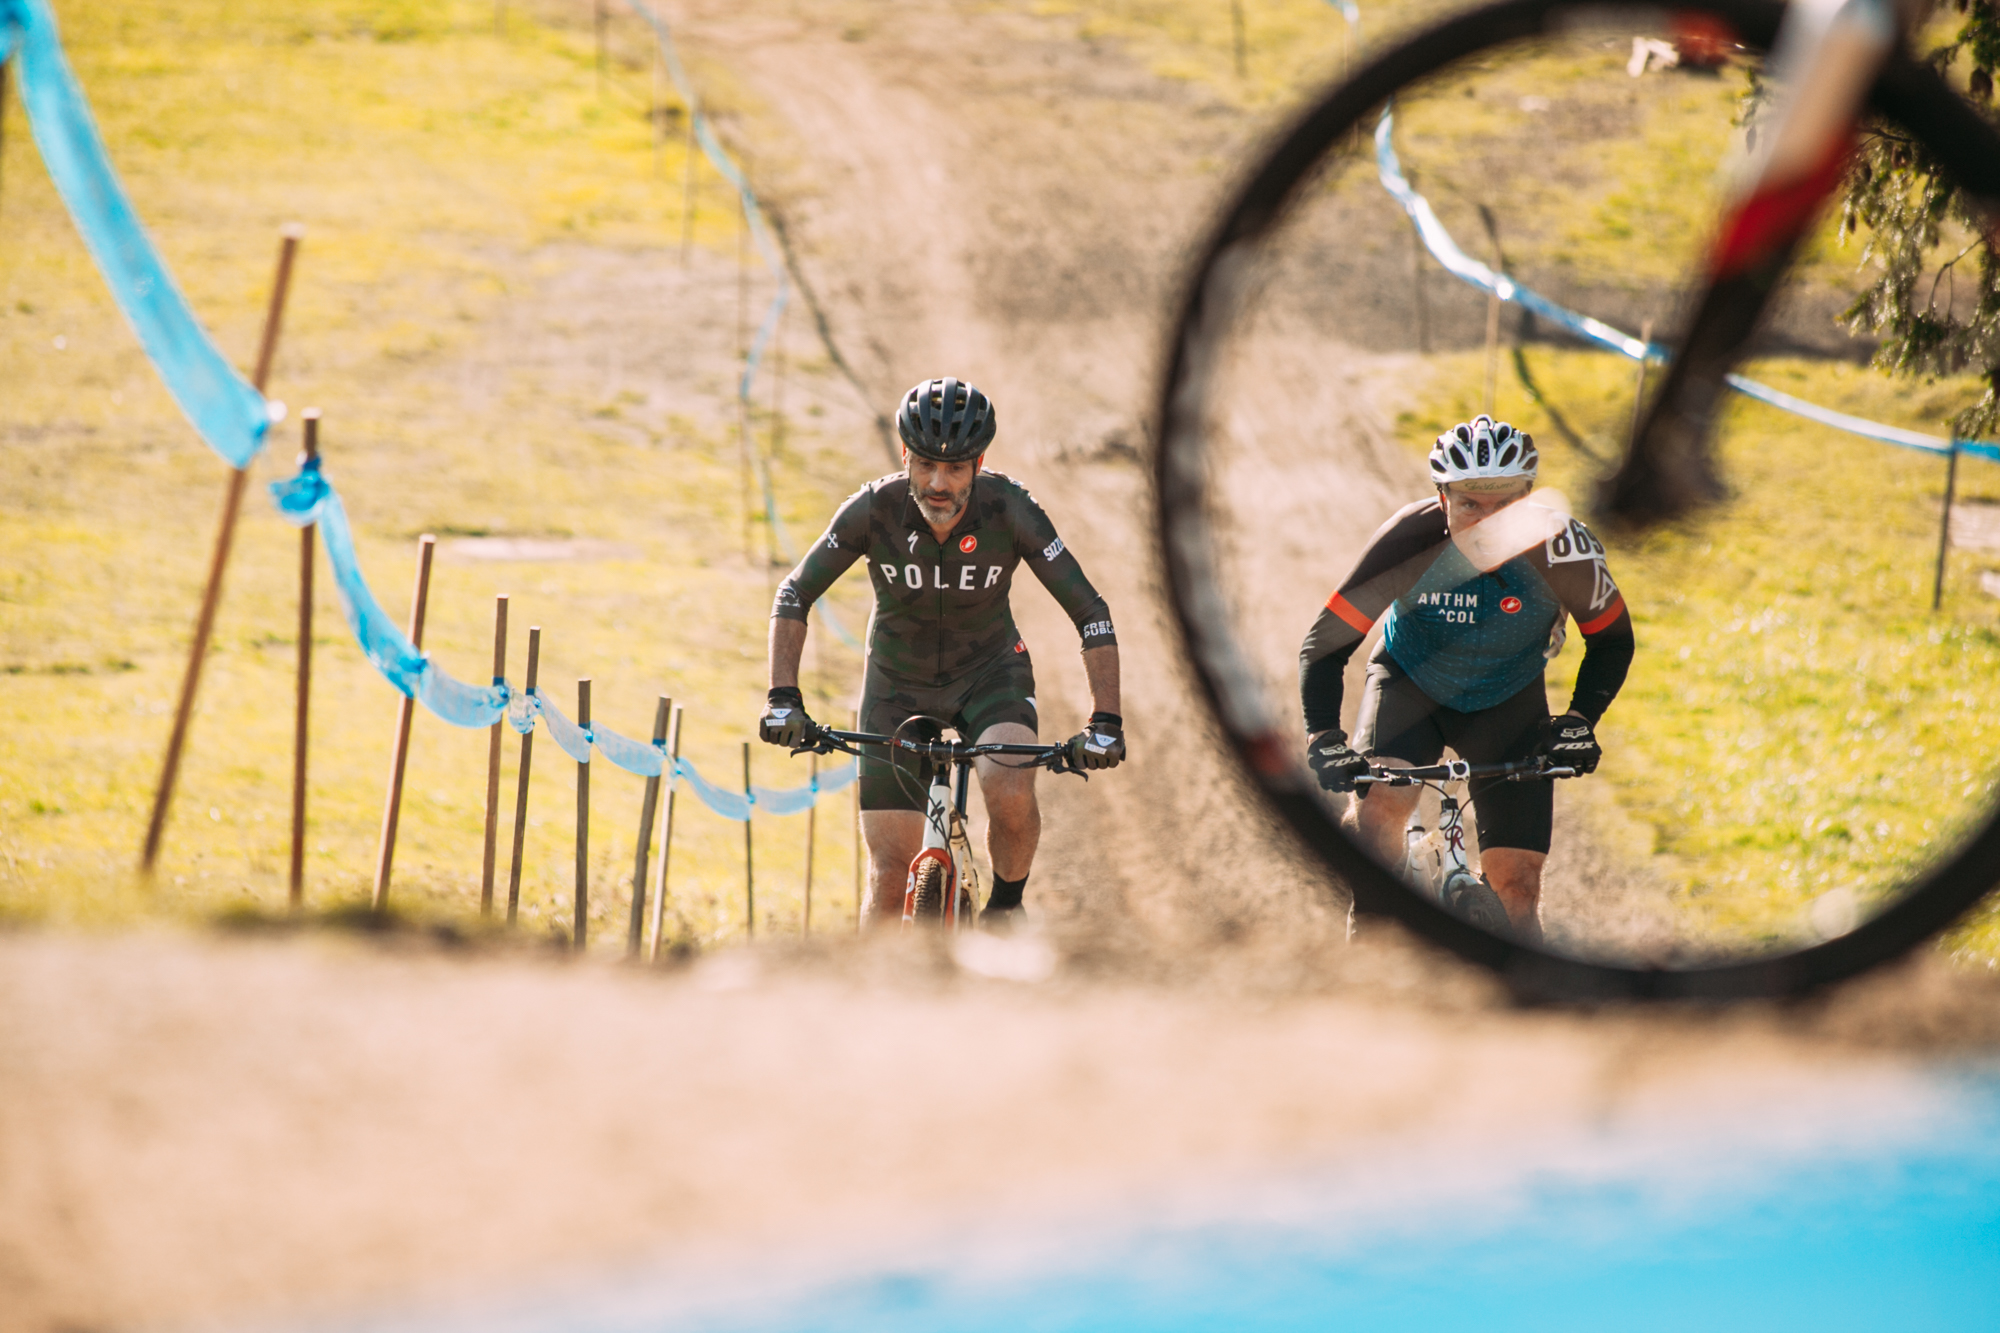 Cyclocross18_CCCX_RainierHS-175-mettlecycling.jpg